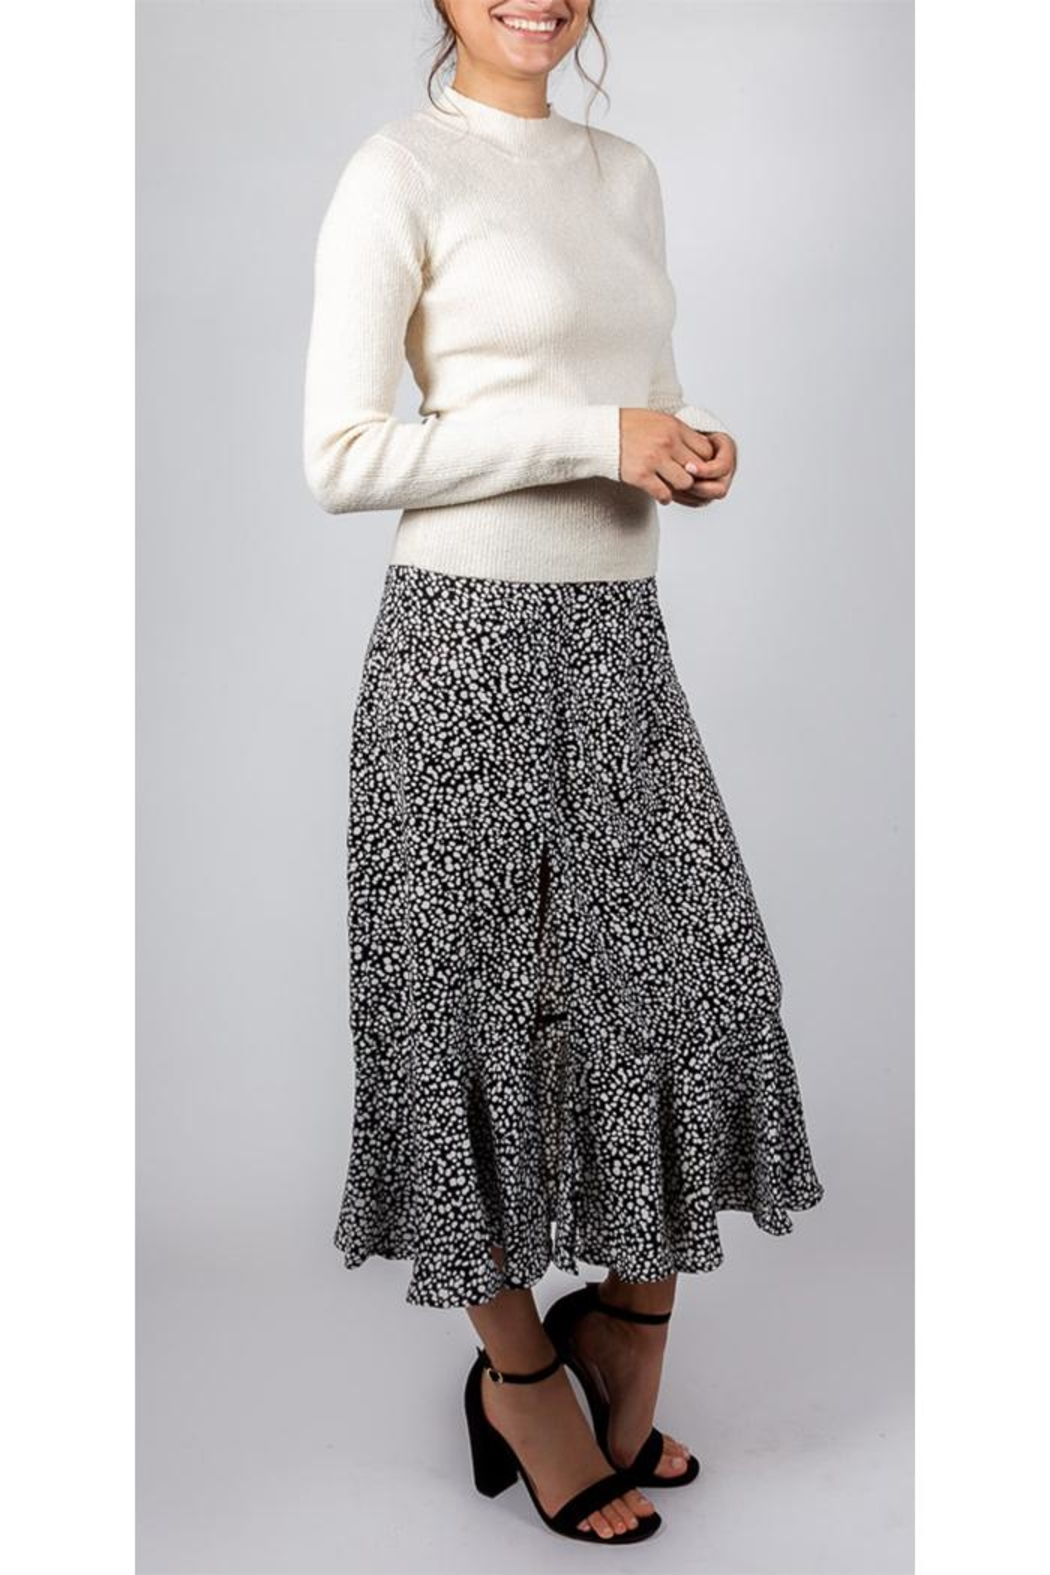 Mustard Seed Spotted Midi Skirt - Back Cropped Image